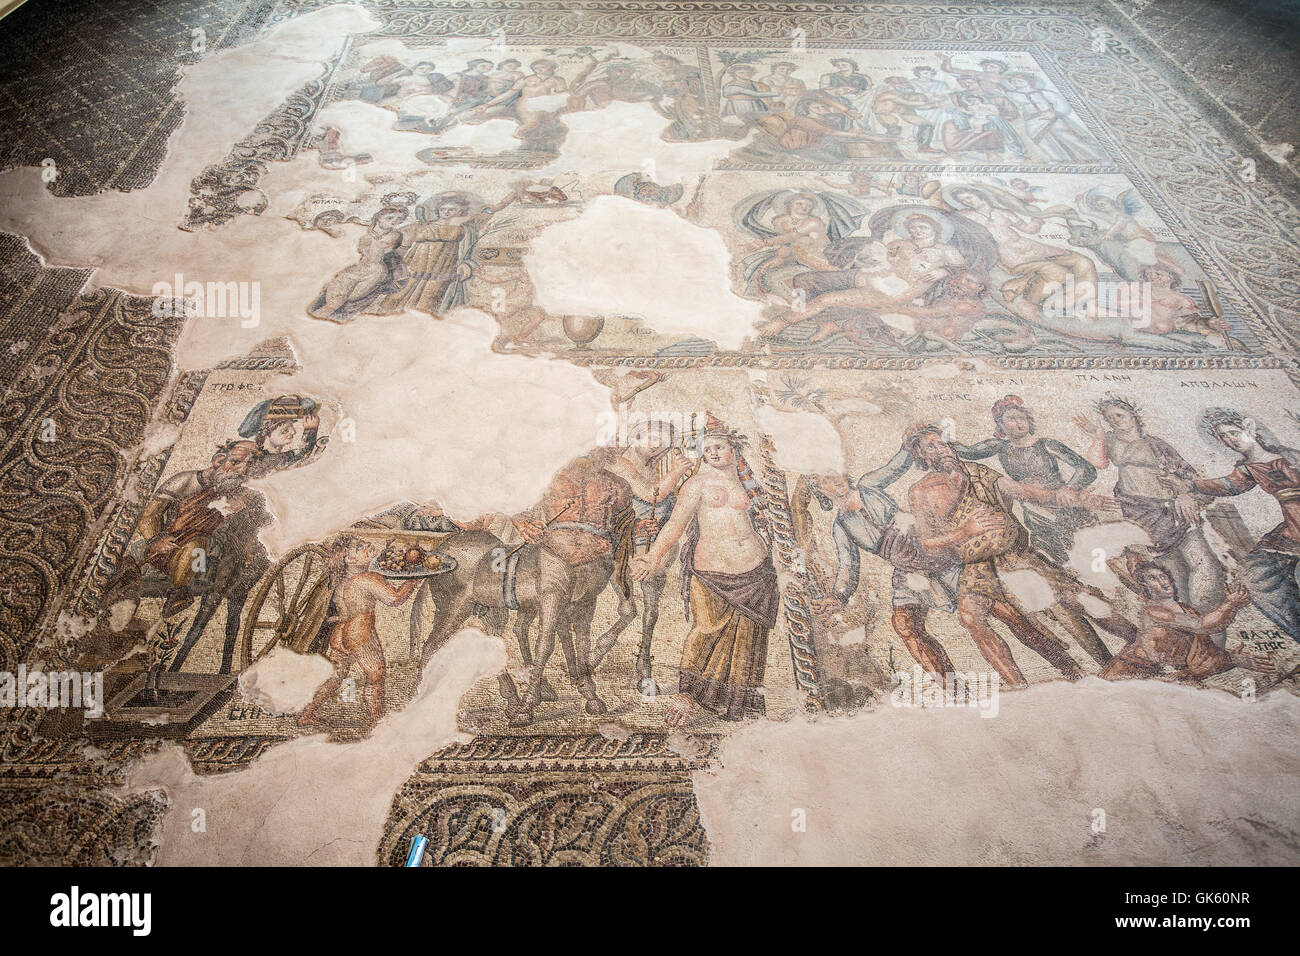 Paphos Archaeological Park in Cyprus. A UNESCO World Heritage Site. Stock Photo